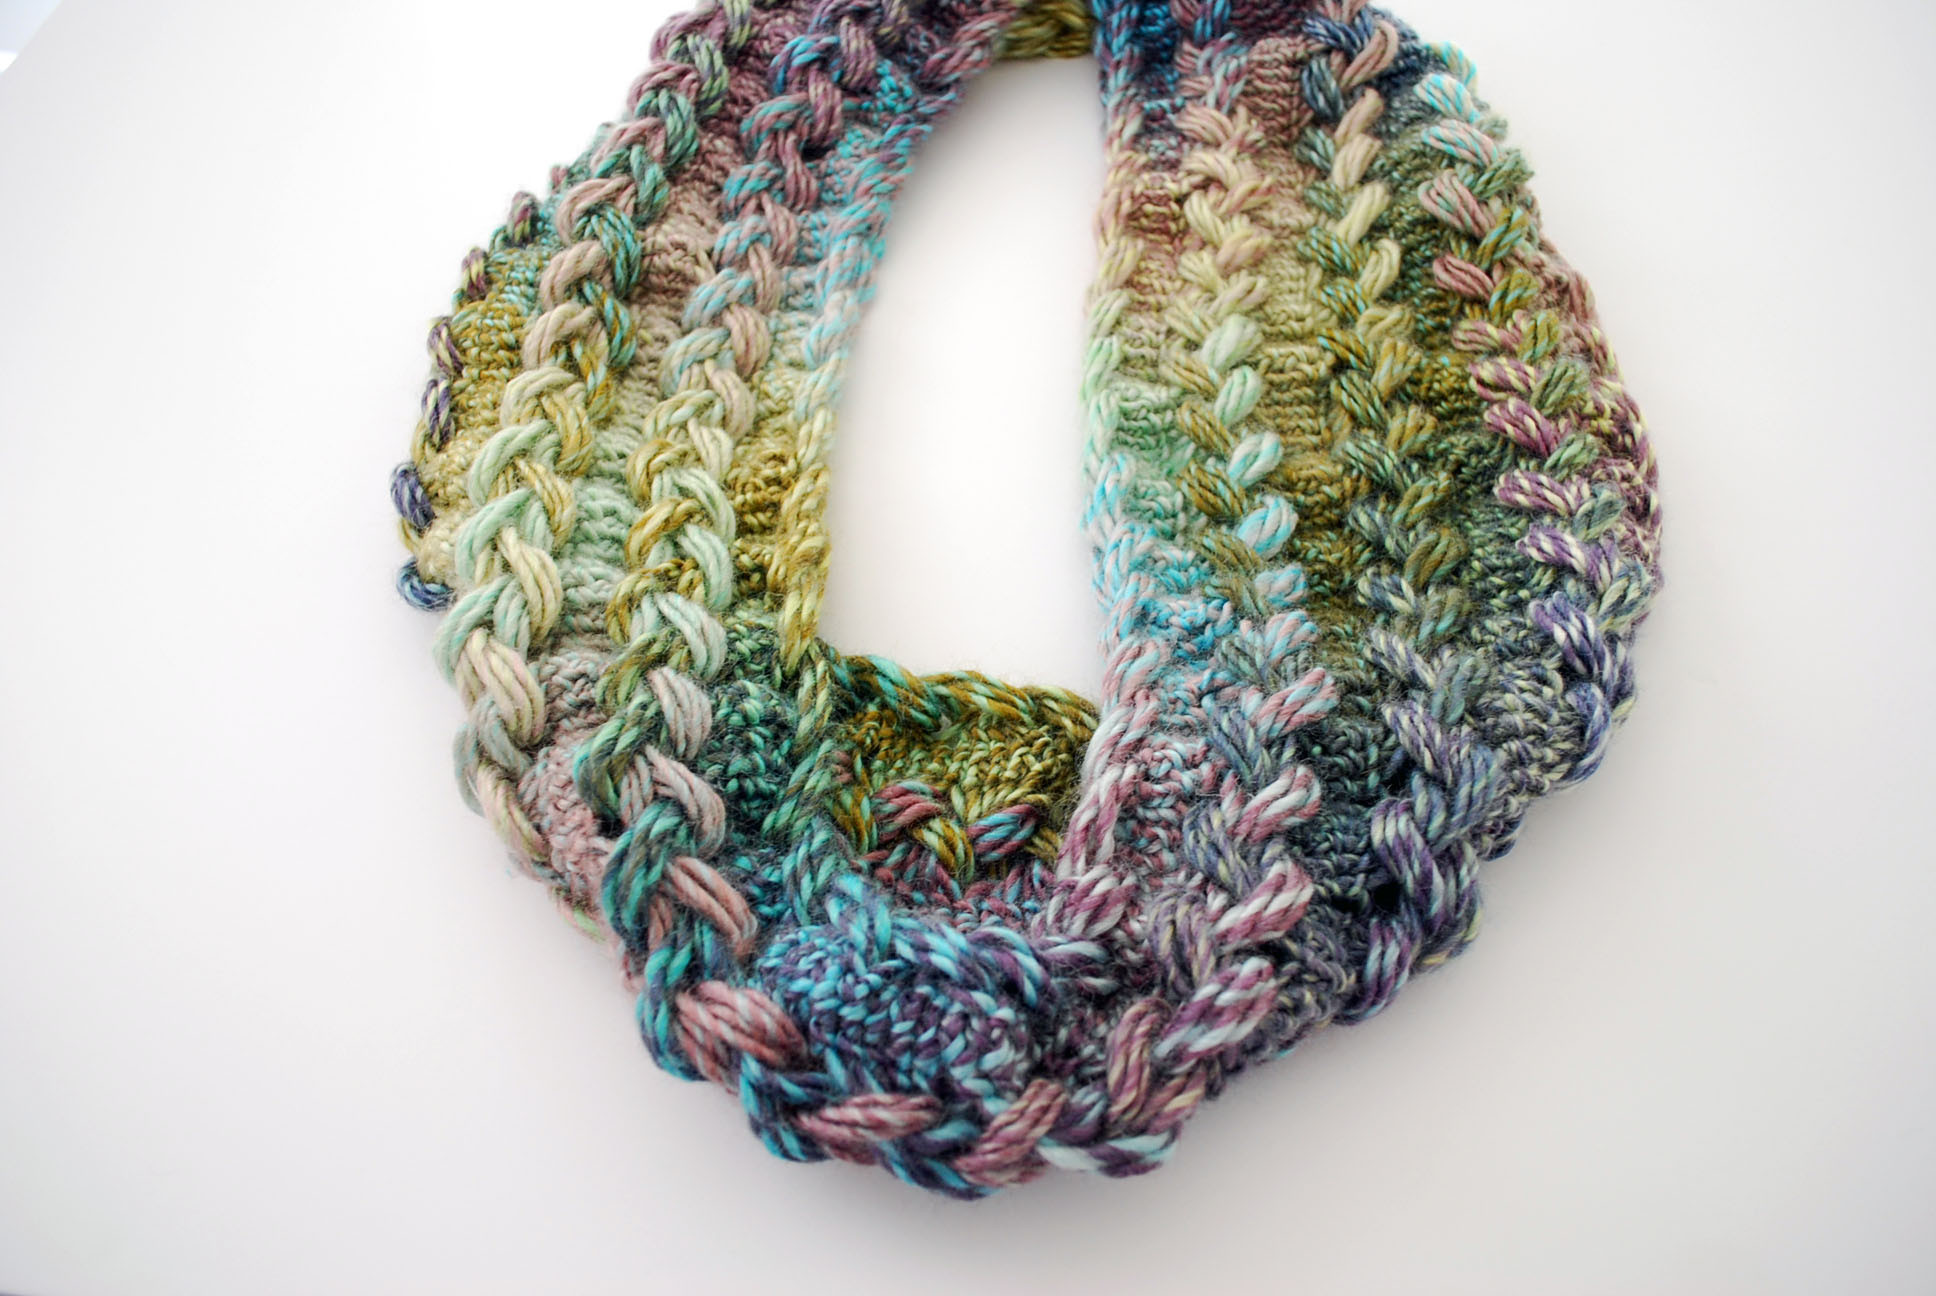 Crochet Infinity Scarf Lovely Hairpin Lace Infinity Scarf Free Pattern and Video Tutorial Of Fresh 46 Pics Crochet Infinity Scarf